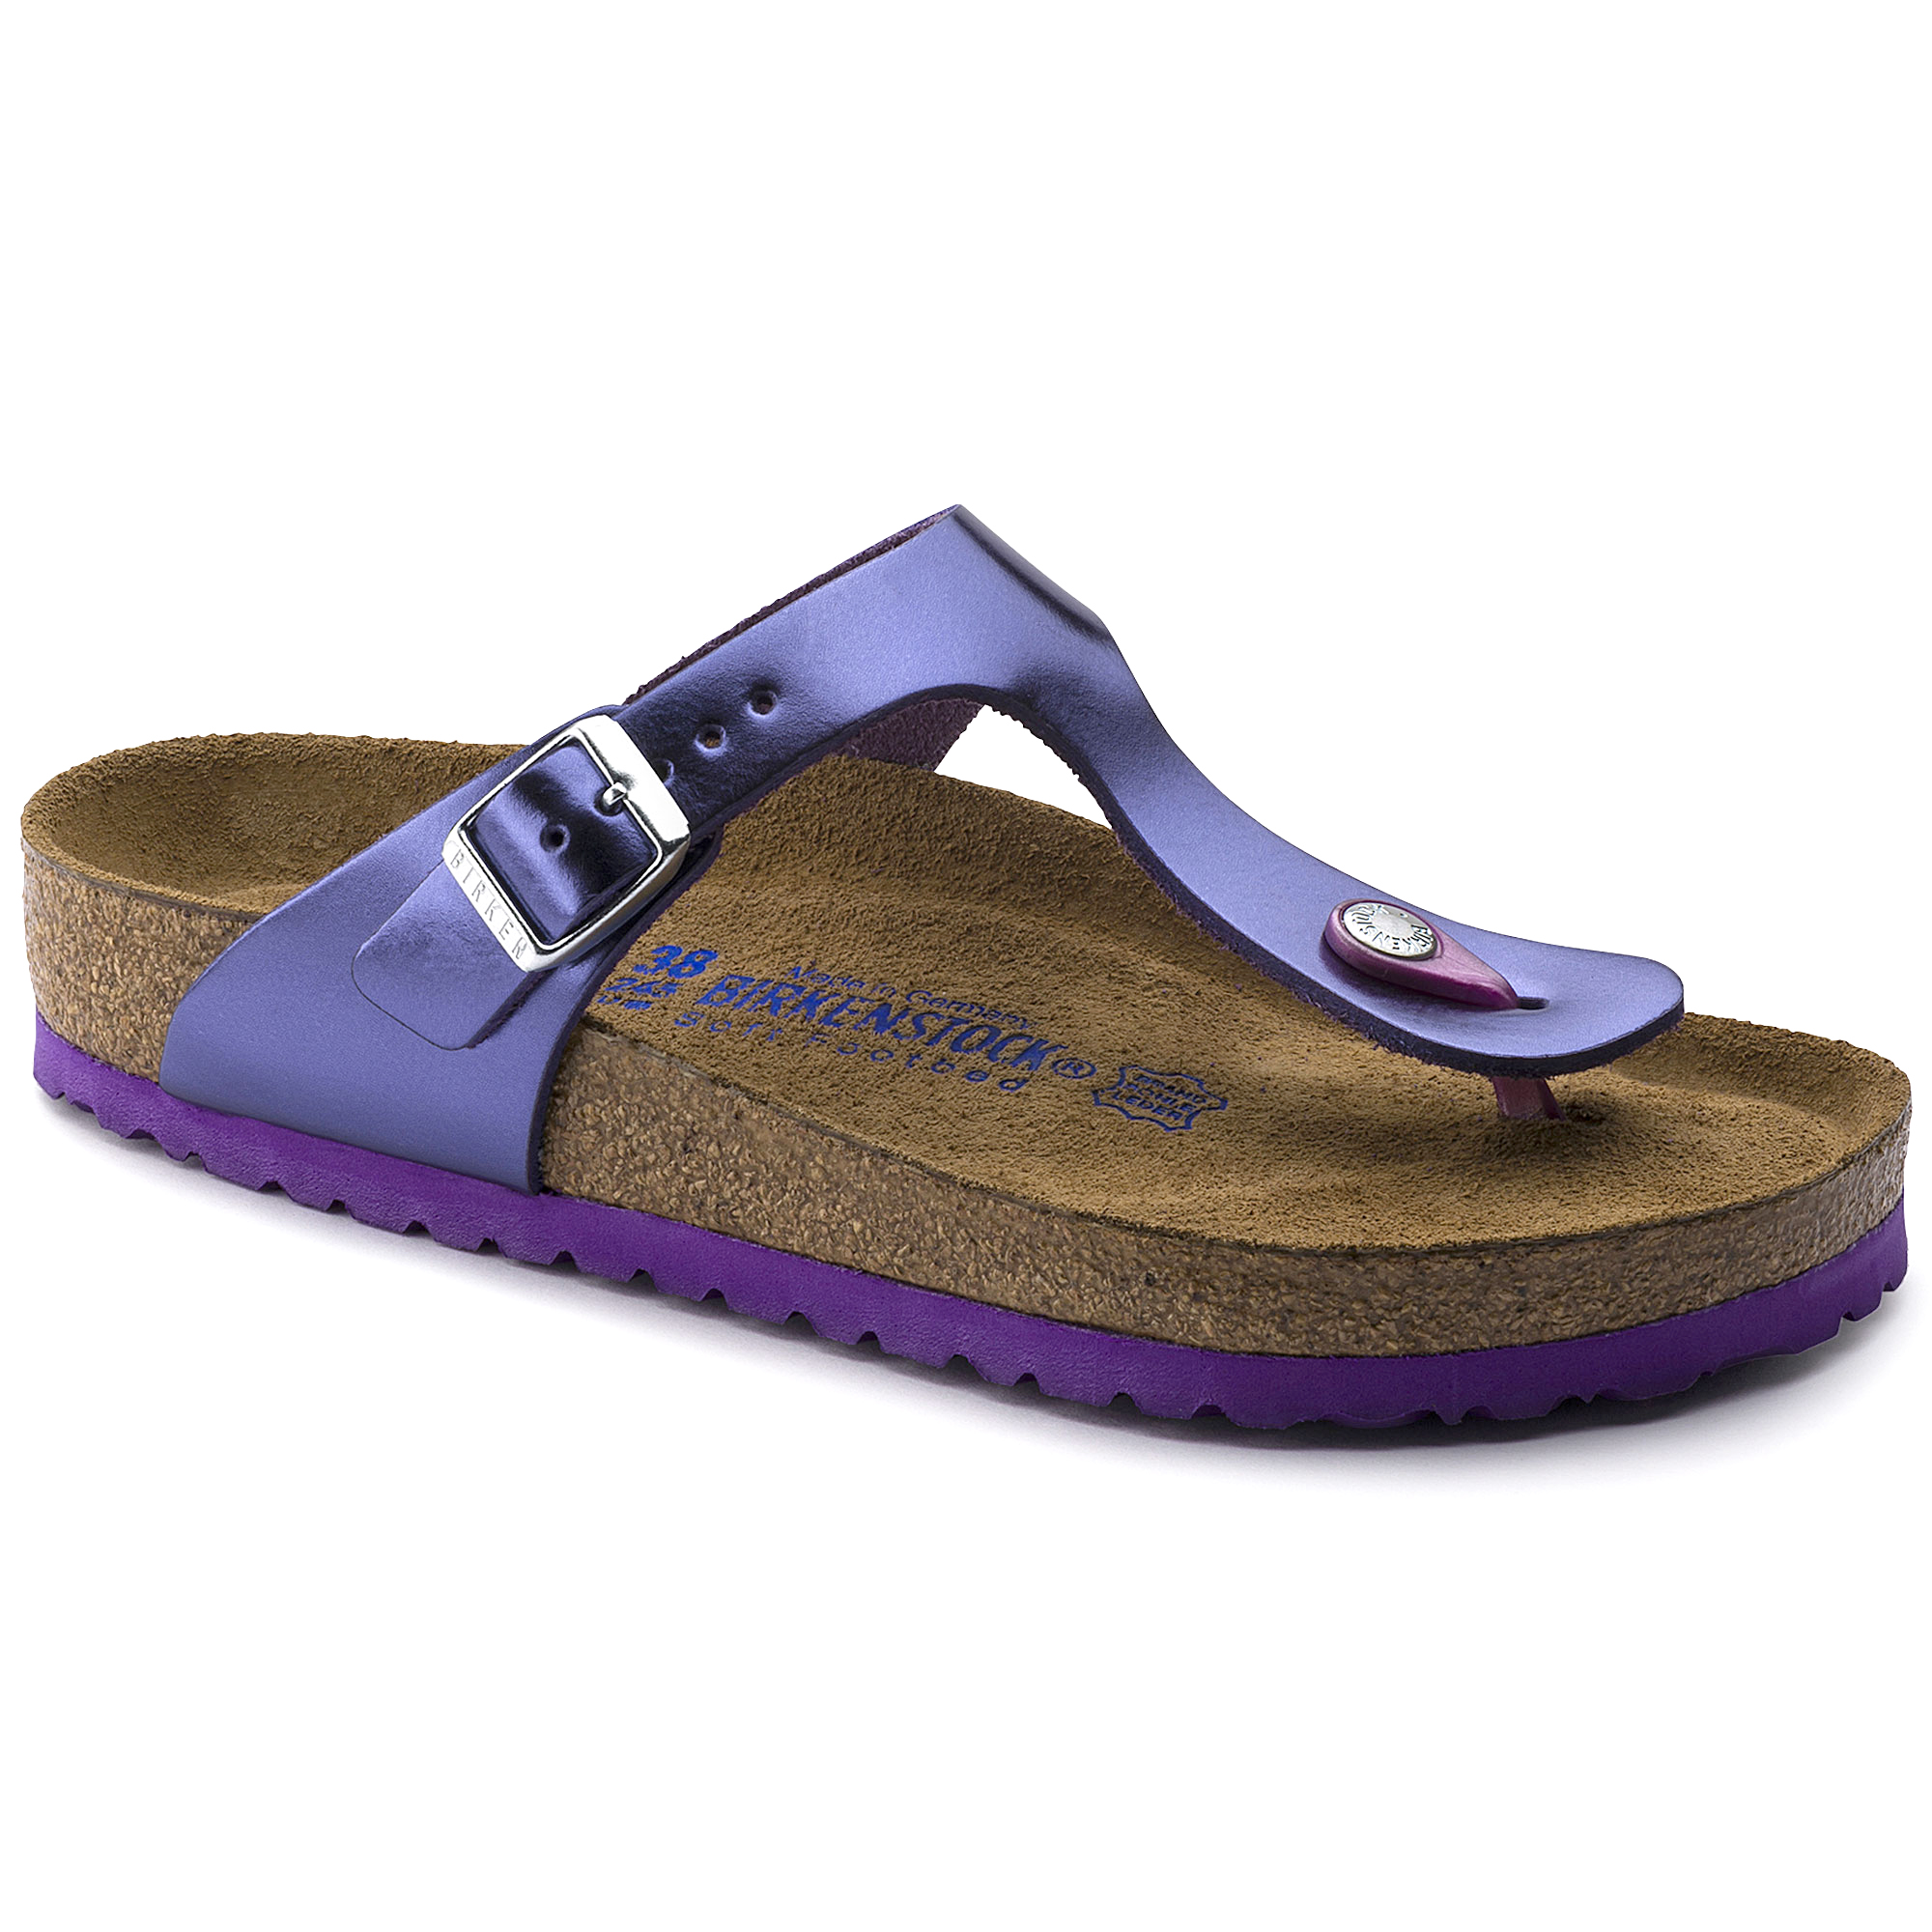 Gizeh Natural Leather Metallic Violet ... 153be955a9b